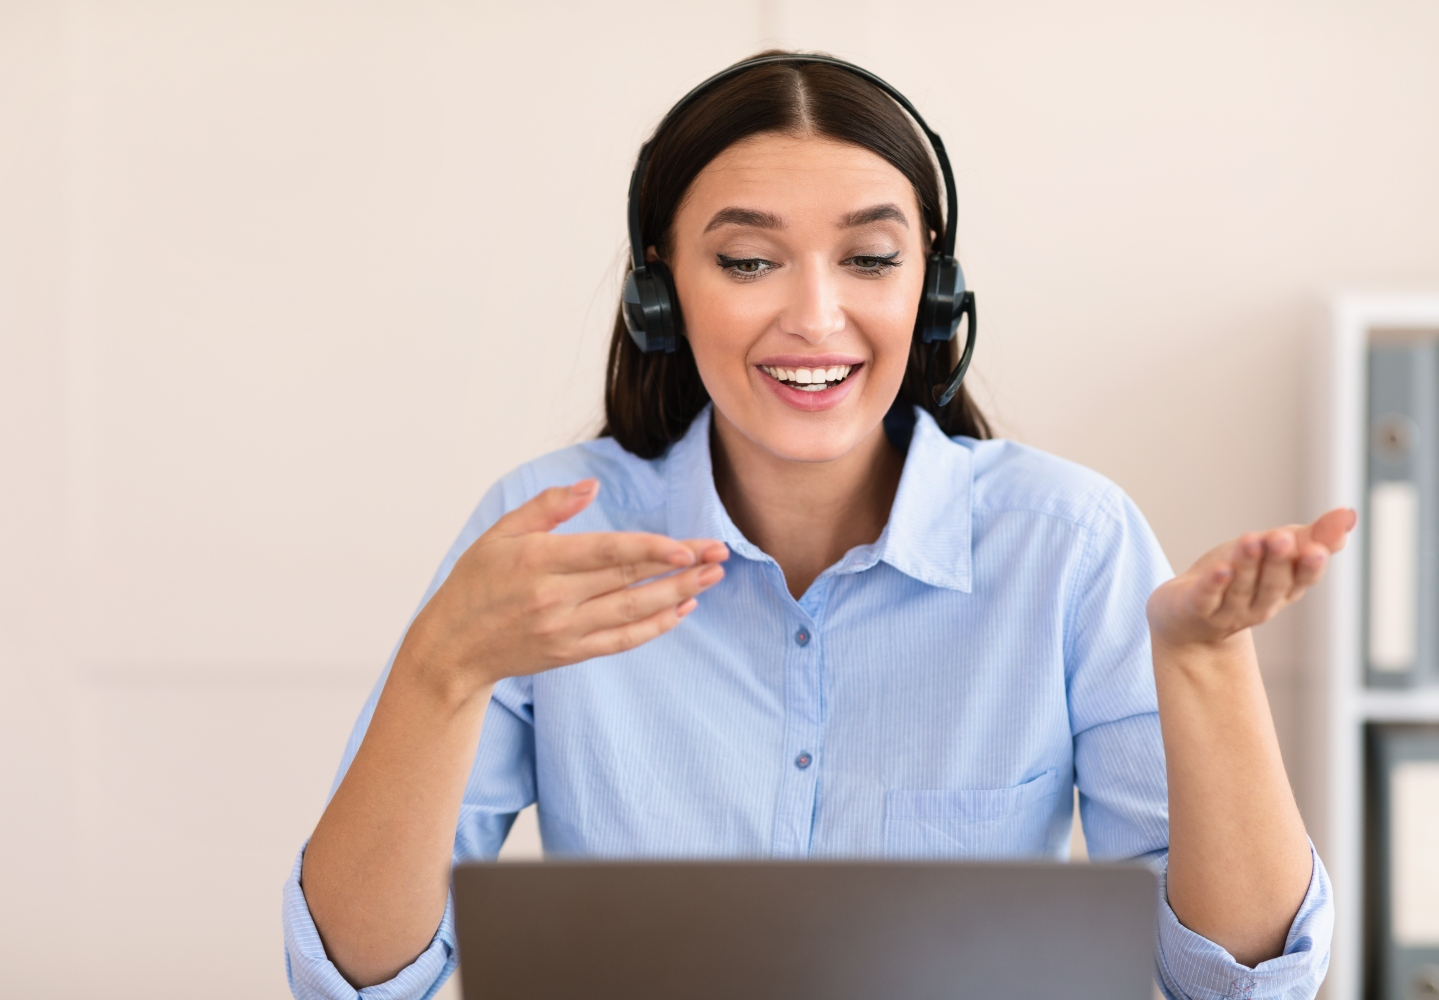 How Tech Support Enhances a Customer's Overall Experience